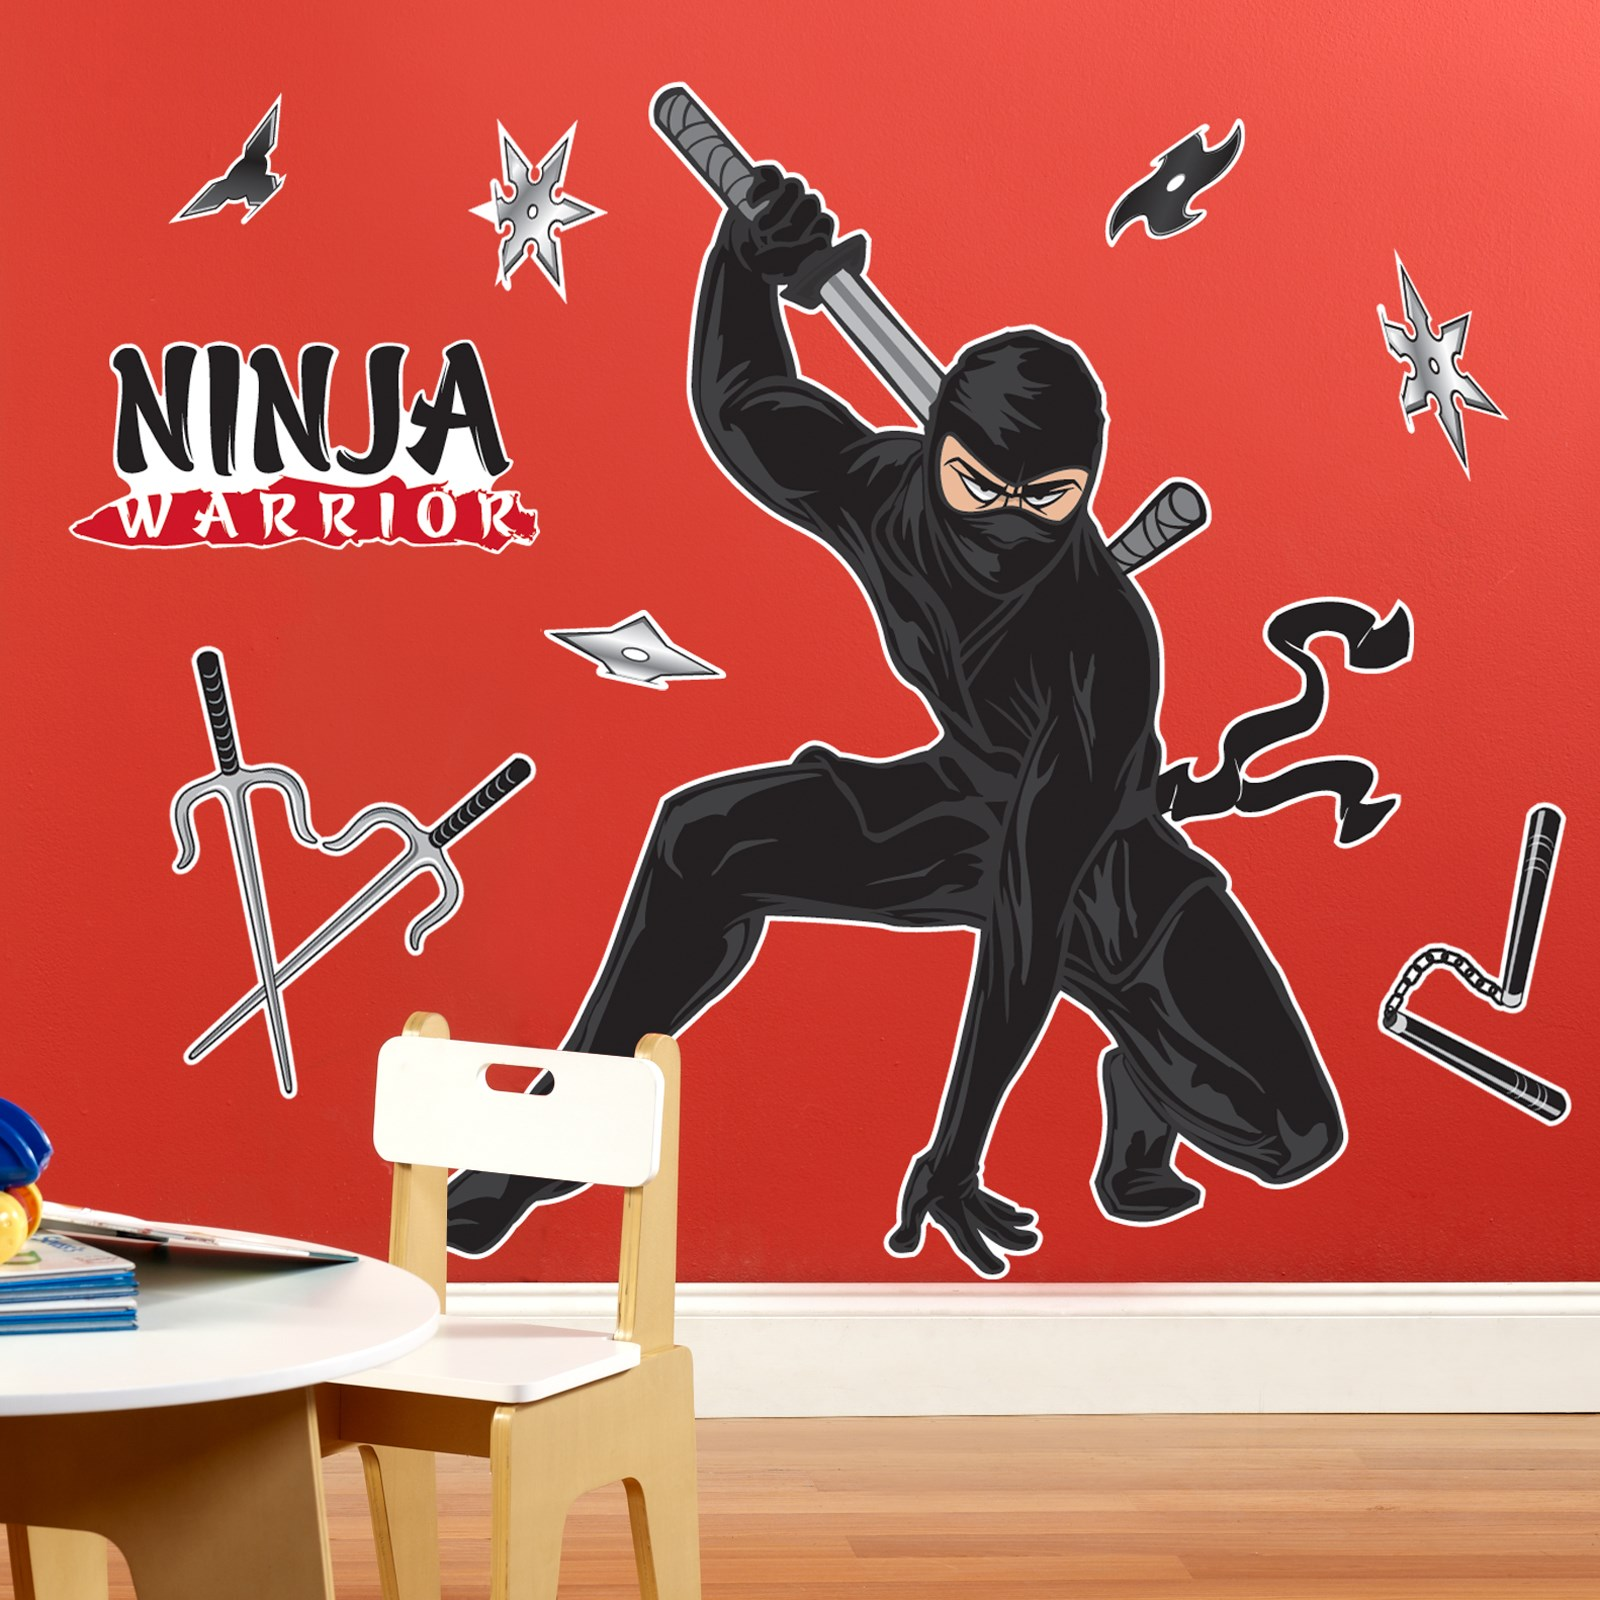 ninja warrior party giant wall decals birthdayexpress com default image ninja warrior party giant wall decals